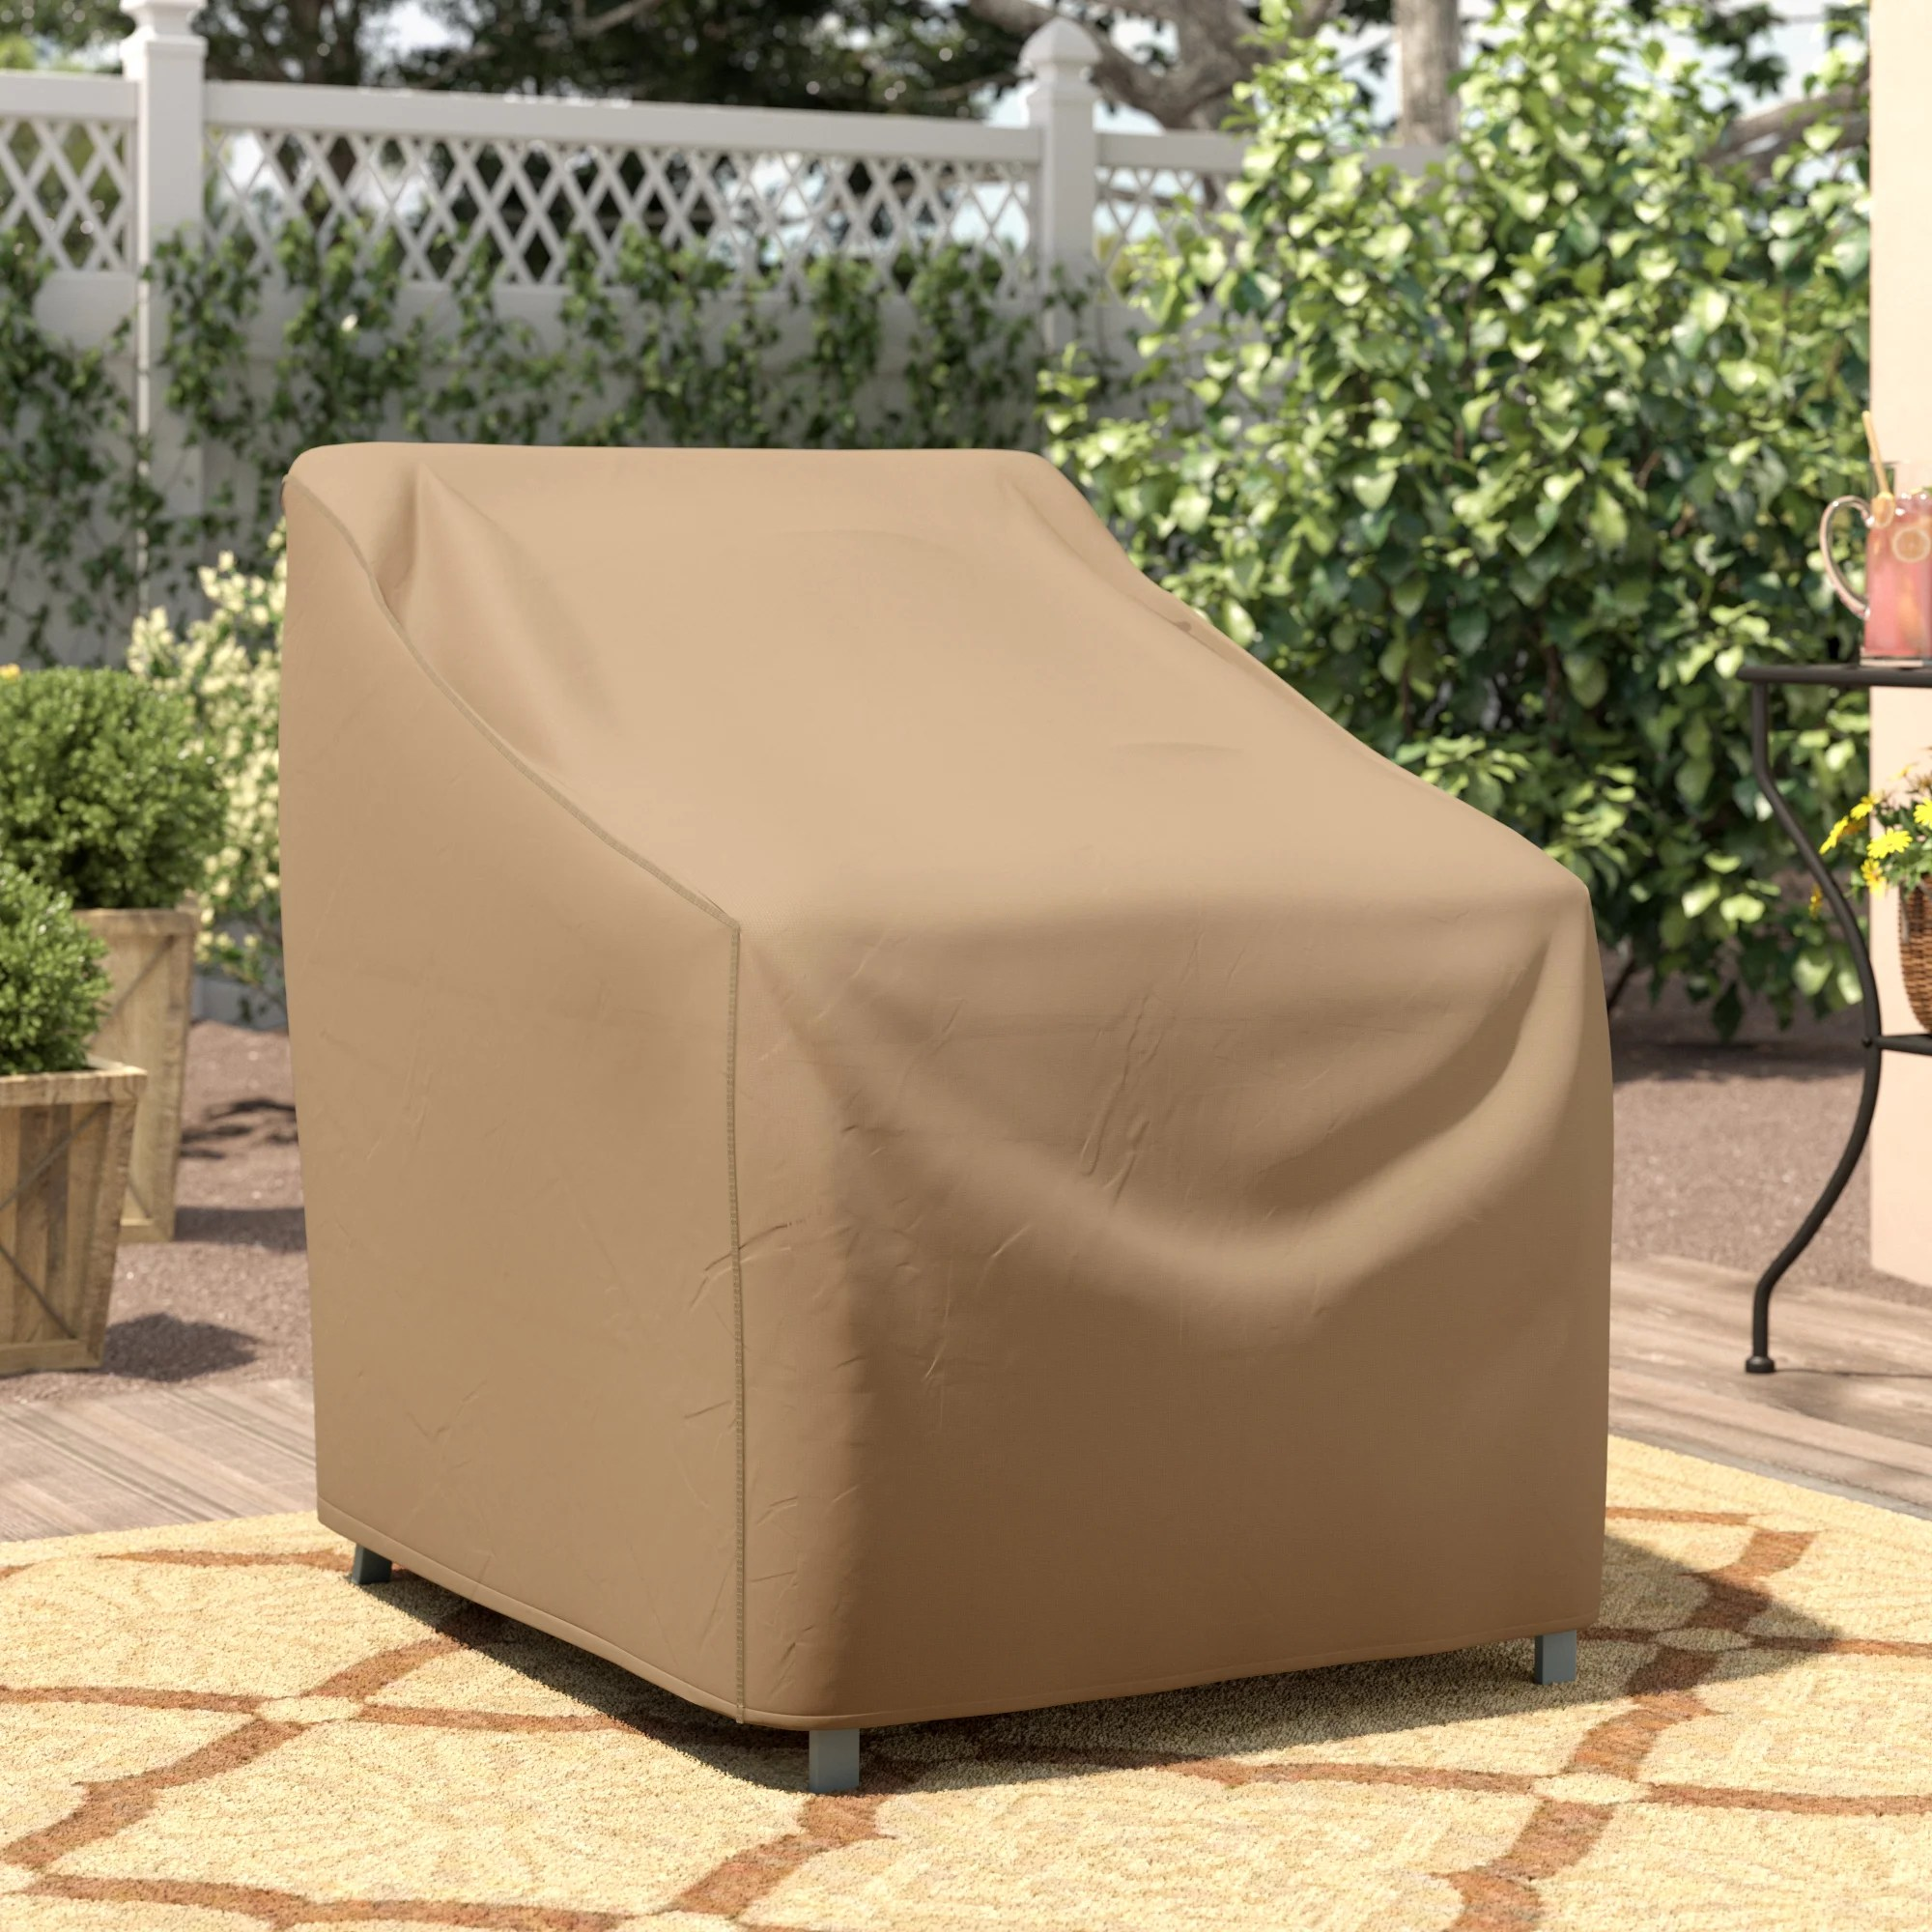 uv resistant outdoor furniture cover